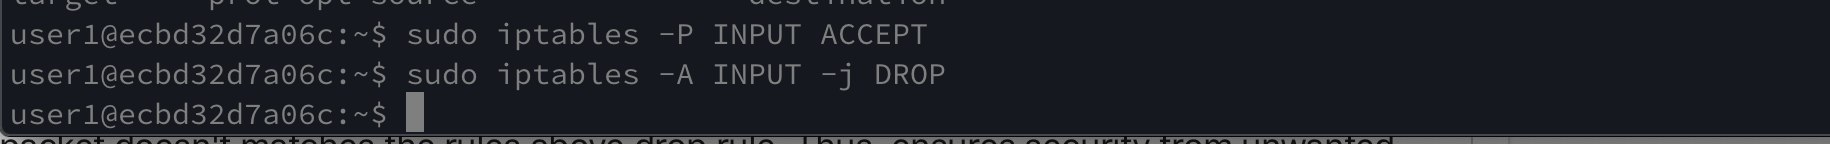 inserting drop and accept rules iptables